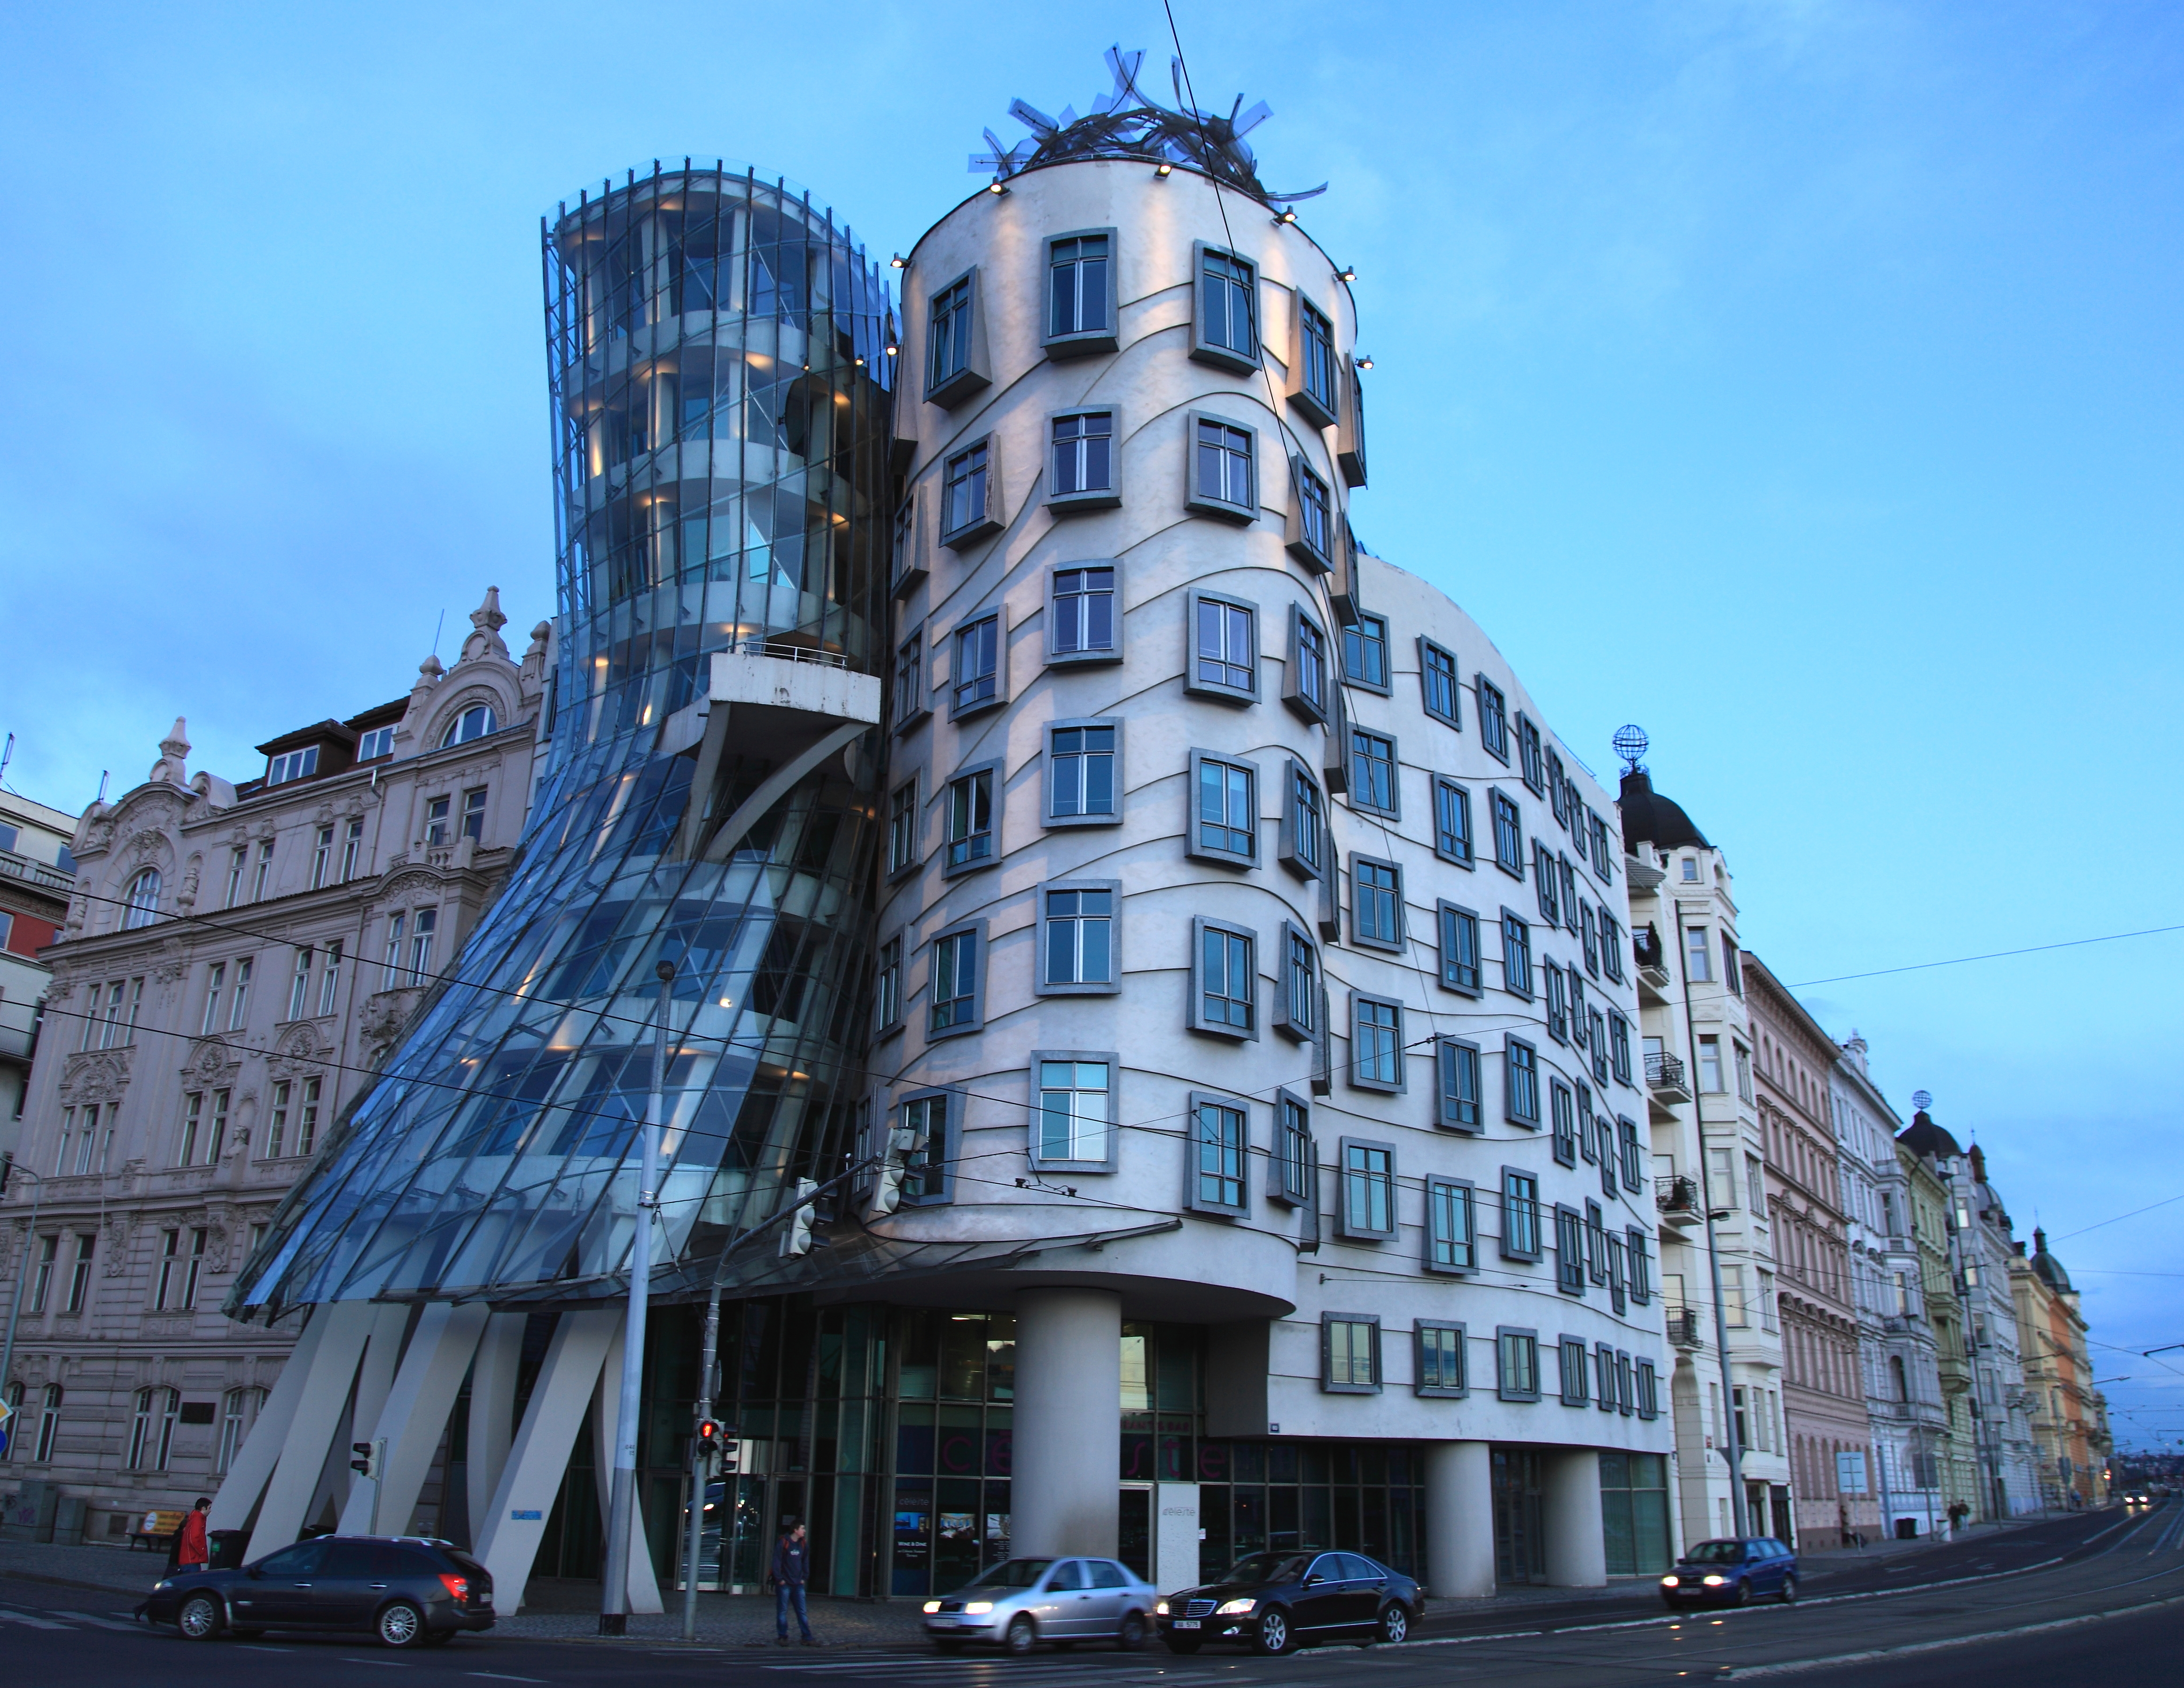 File:Dancing House (7339585566).jpg - Wikimedia Commons